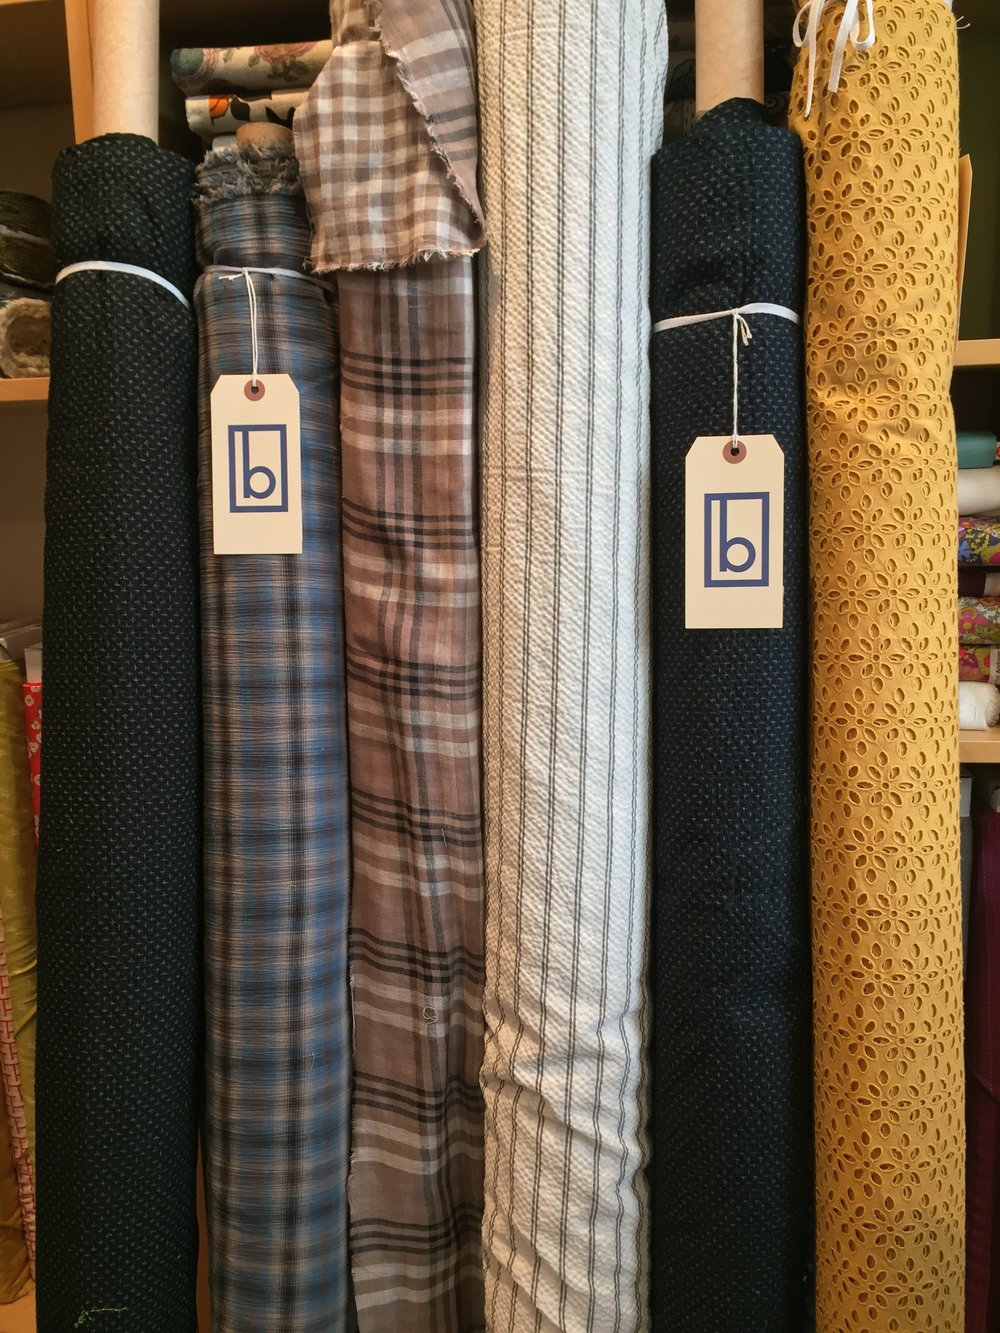 Loads of texture in this group: plisse, crinkle plaid, double sided gauze plaid, mustard color cotton eyelet.